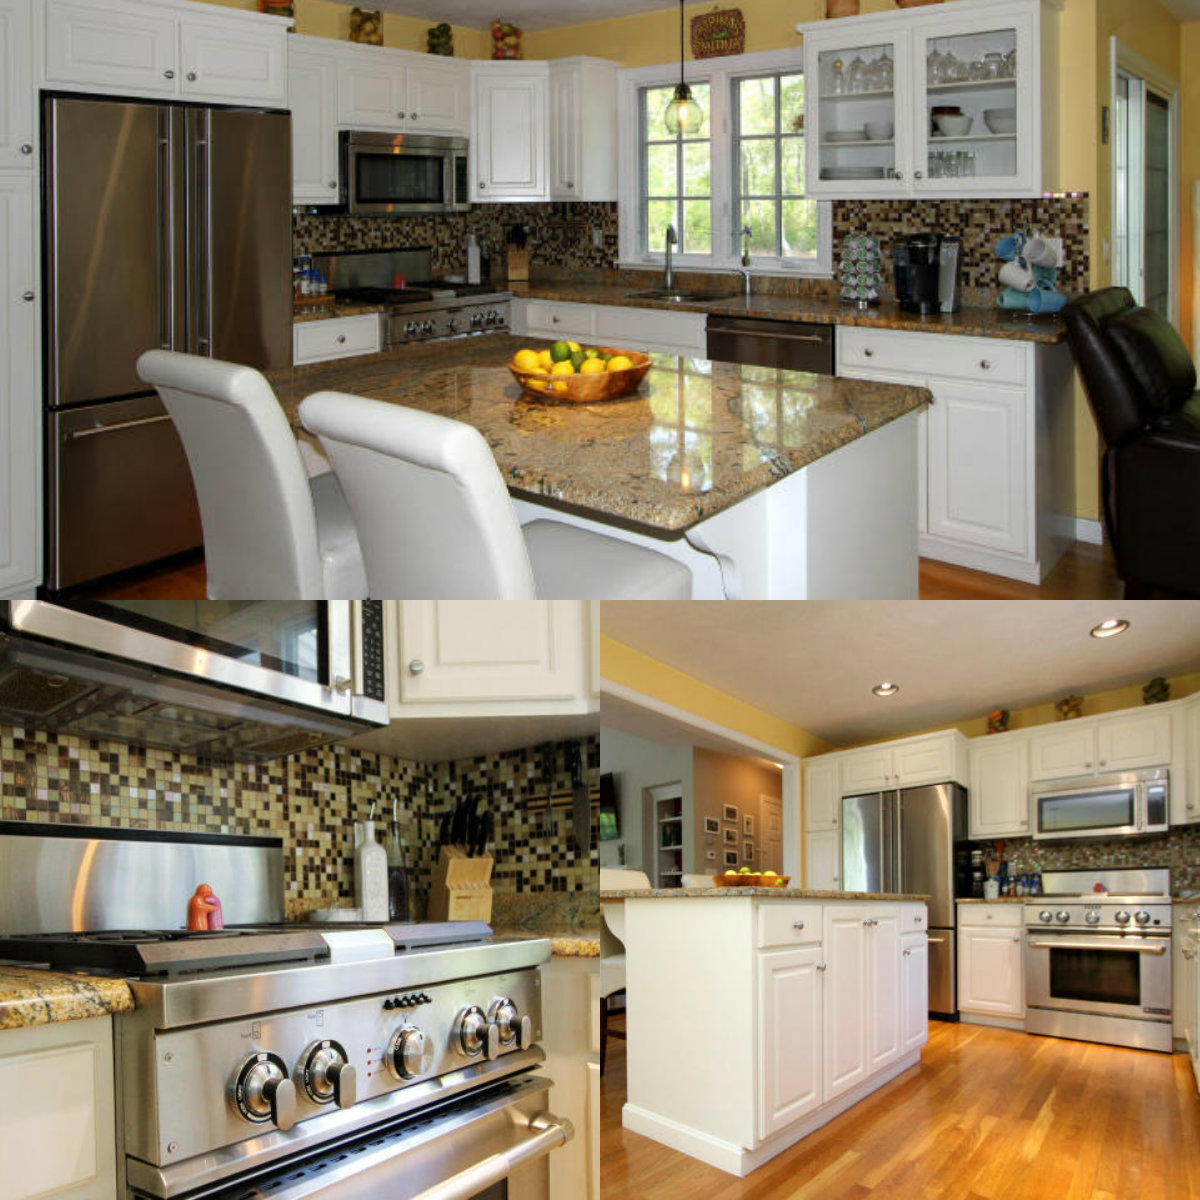 Images of kitchen at 27 Atwood Circle in Brewster Cape Cod MA